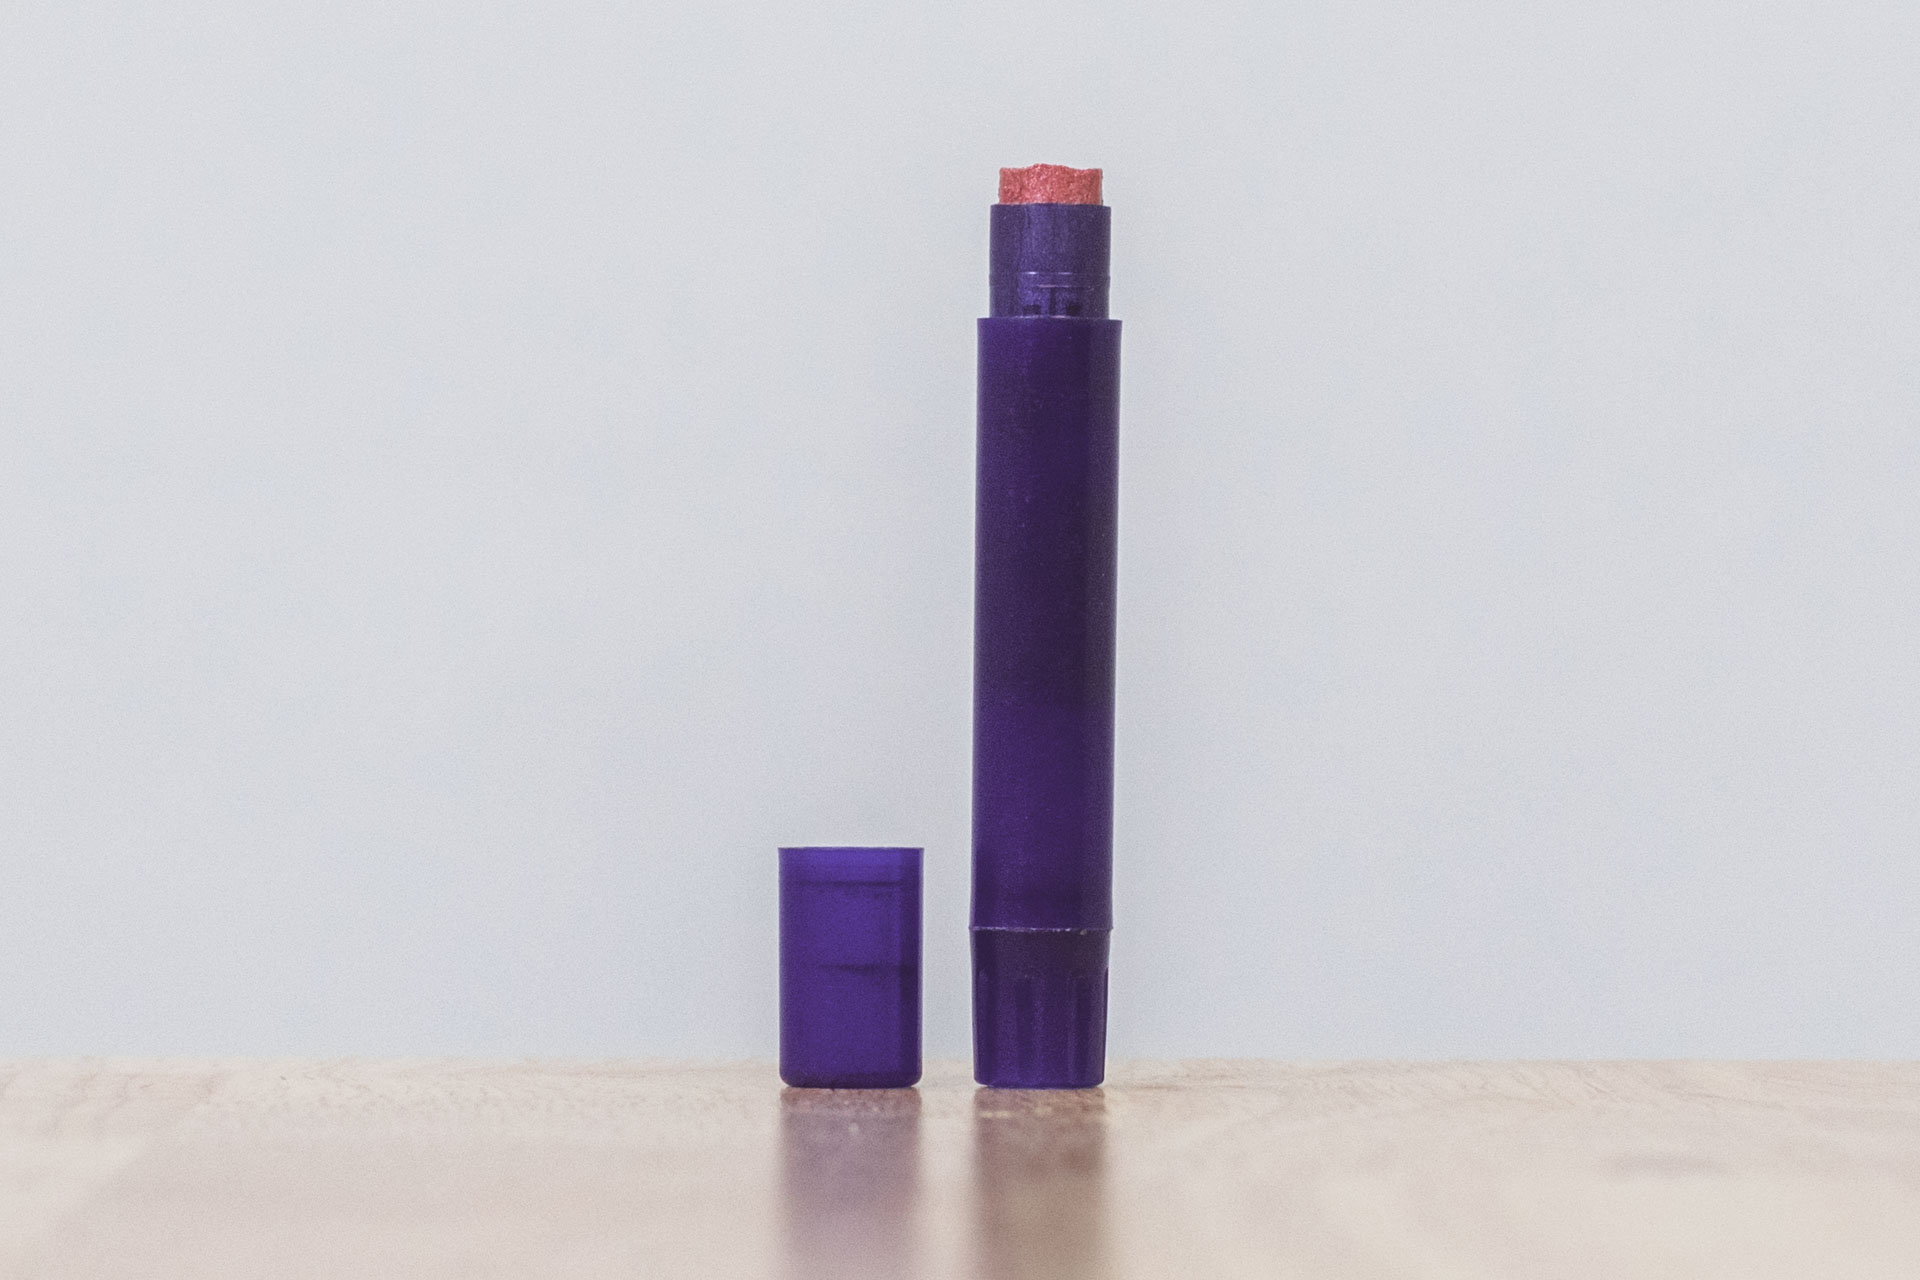 Lip Lux Beeswax Lip Stain